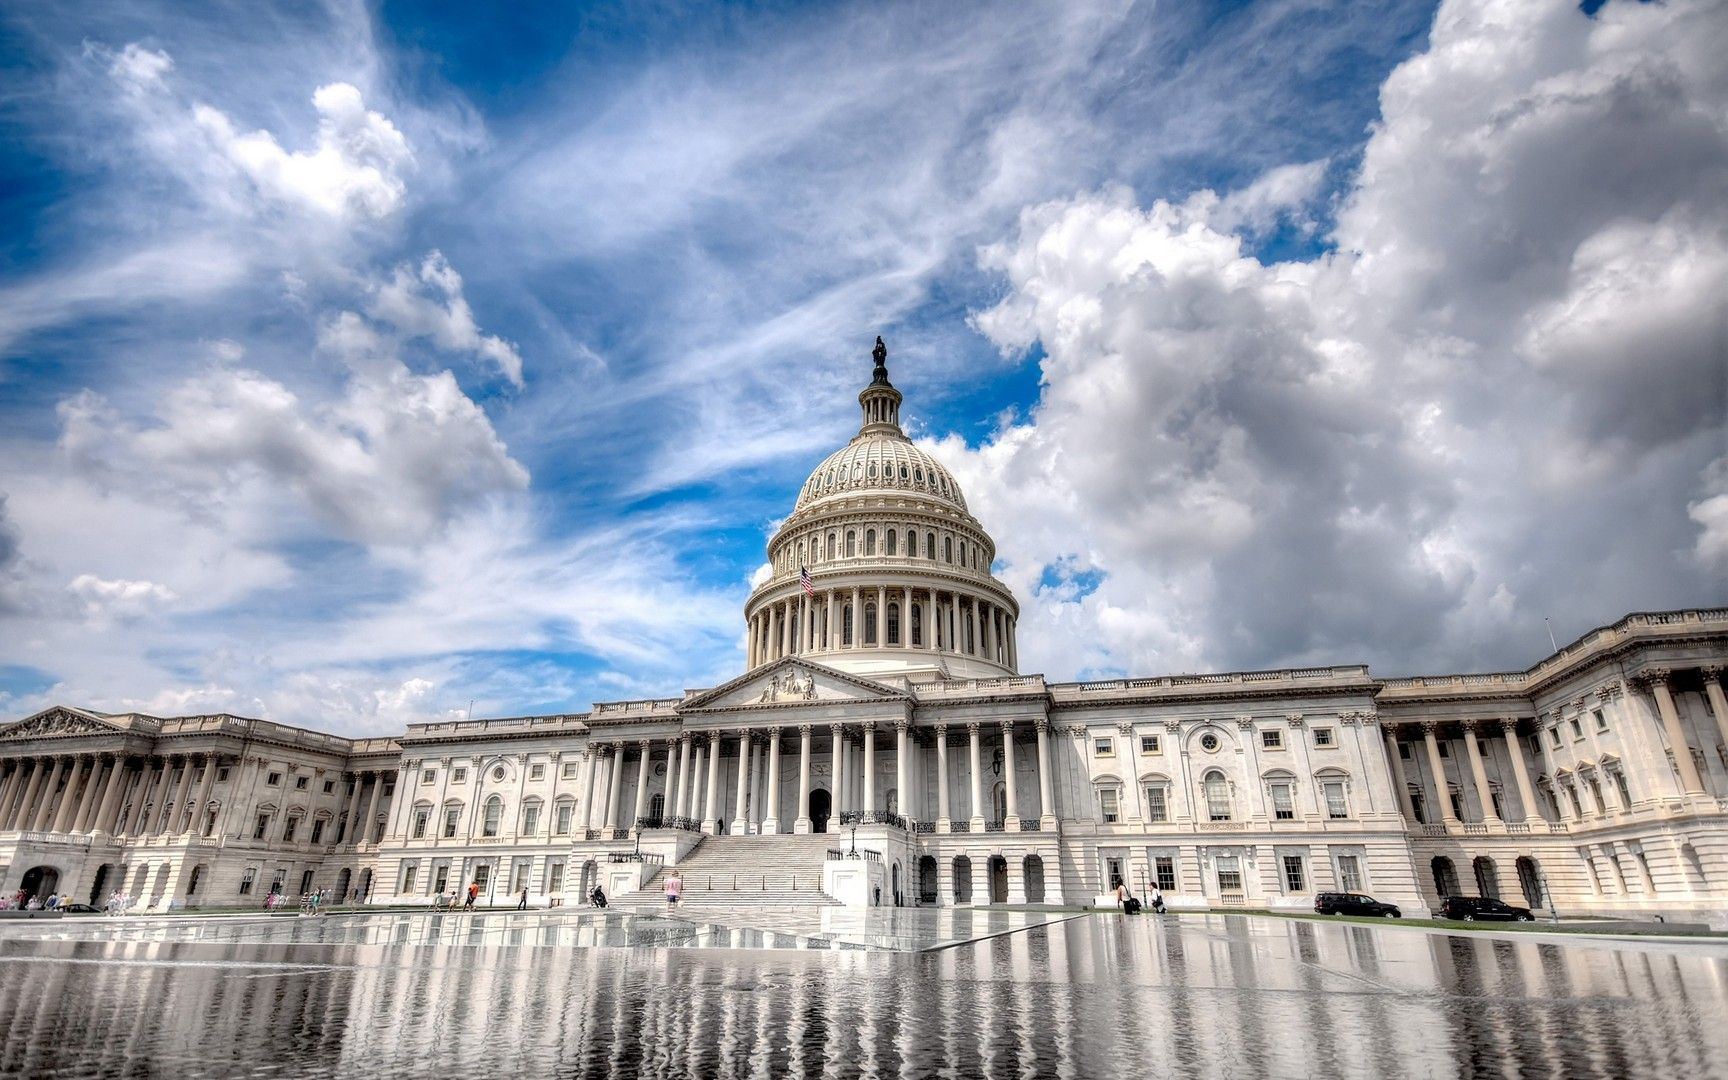 HD United States Capitol wallpaper | Capitol building, United ...